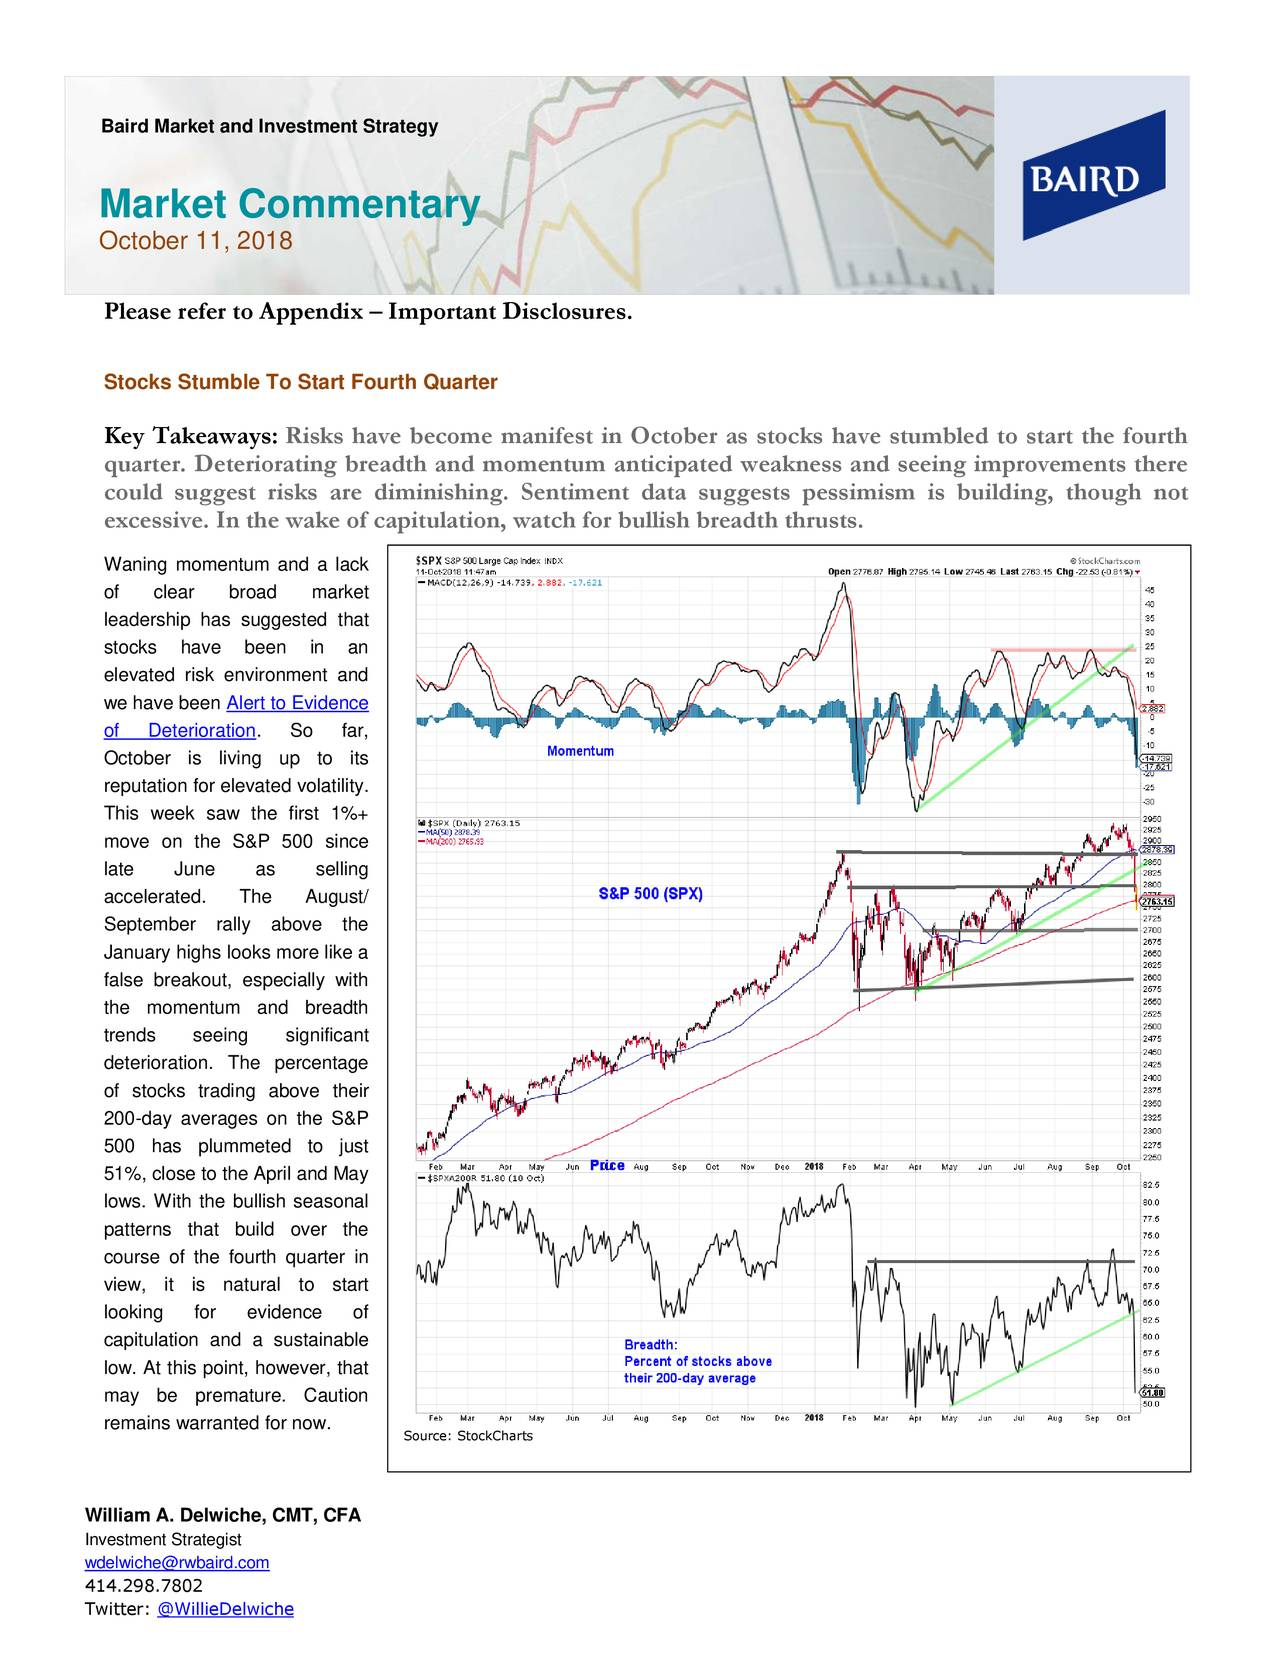 Market Commentary October 11, 2018 Please refer to Appendix – Important Disclosures. Stocks Stumble To Start Fourth Quarter Key Takeaways: Risks have become manifest in October as stocks have stumbled to start the fourth quarter. Deteriorating breadth and momentum anticipated weakness and seeing improvements there could suggest risks are diminishing. Sentiment data suggests pessimism is building, though not excessive. In the wake of capitulation, watch for bullish breadth thrusts. Waning momentum and a lack of clear broad market leadership has suggested that stocks have been in an elevated risk environment and we have been Alert to Evidence of Deterioration. So far, October is living up to its reputation for elevated volatility. This week saw the first 1%+ move on the S&P 500 since late June as selling accelerated. The August/ September rally above the January highs looks more like a false breakout, especially with the momentum and breadth trends seeing significant deterioration. The percentage of stocks trading above their 200-day averages on the S&P 500 has plummeted to just 51%, close to the April and May lows. With the bullish seasonal patterns that build over the course of the fourth quarter in view, it is natural to start looking for evidence of capitulation and a sustainable low. At this point, however, that may be premature. Caution remains warranted for now. Source: StockCharts William A. Delwiche, CMT, CFA Investment Strategist wdelwiche@rwbaird.com 414.298.7802 Twitter: @WillieDelwiche